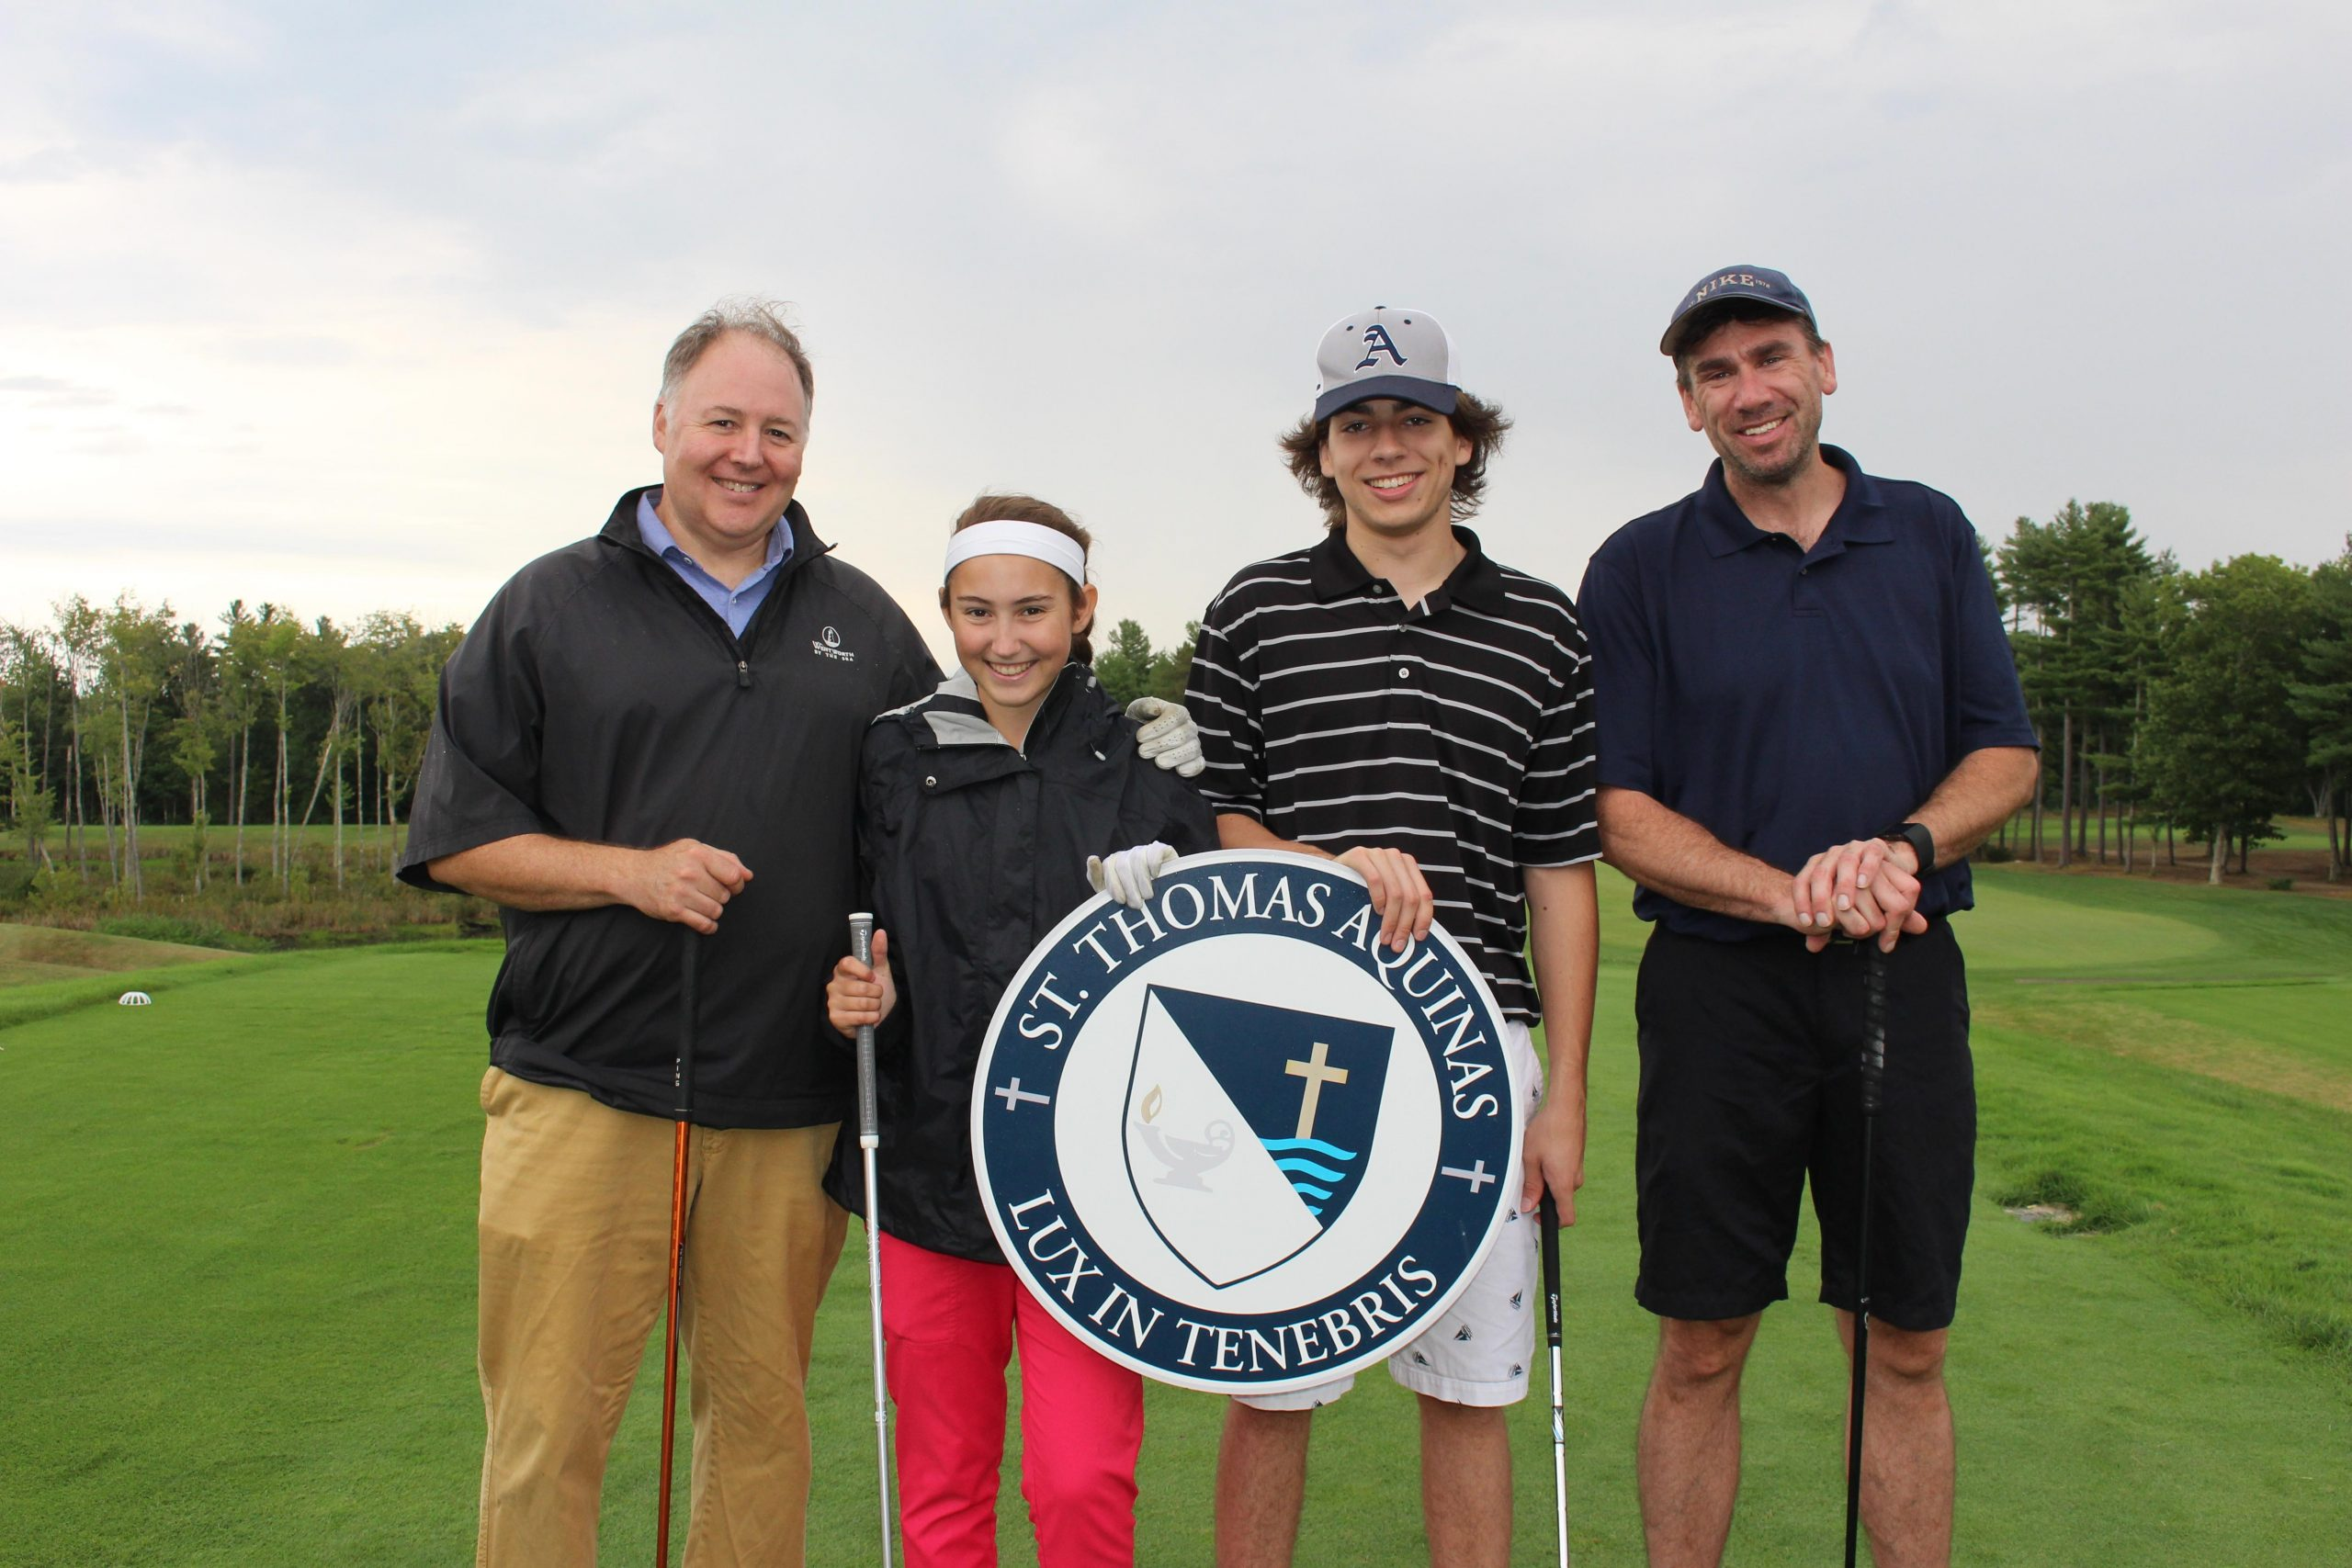 St. Thomas Aquinas High School Golf Tournament